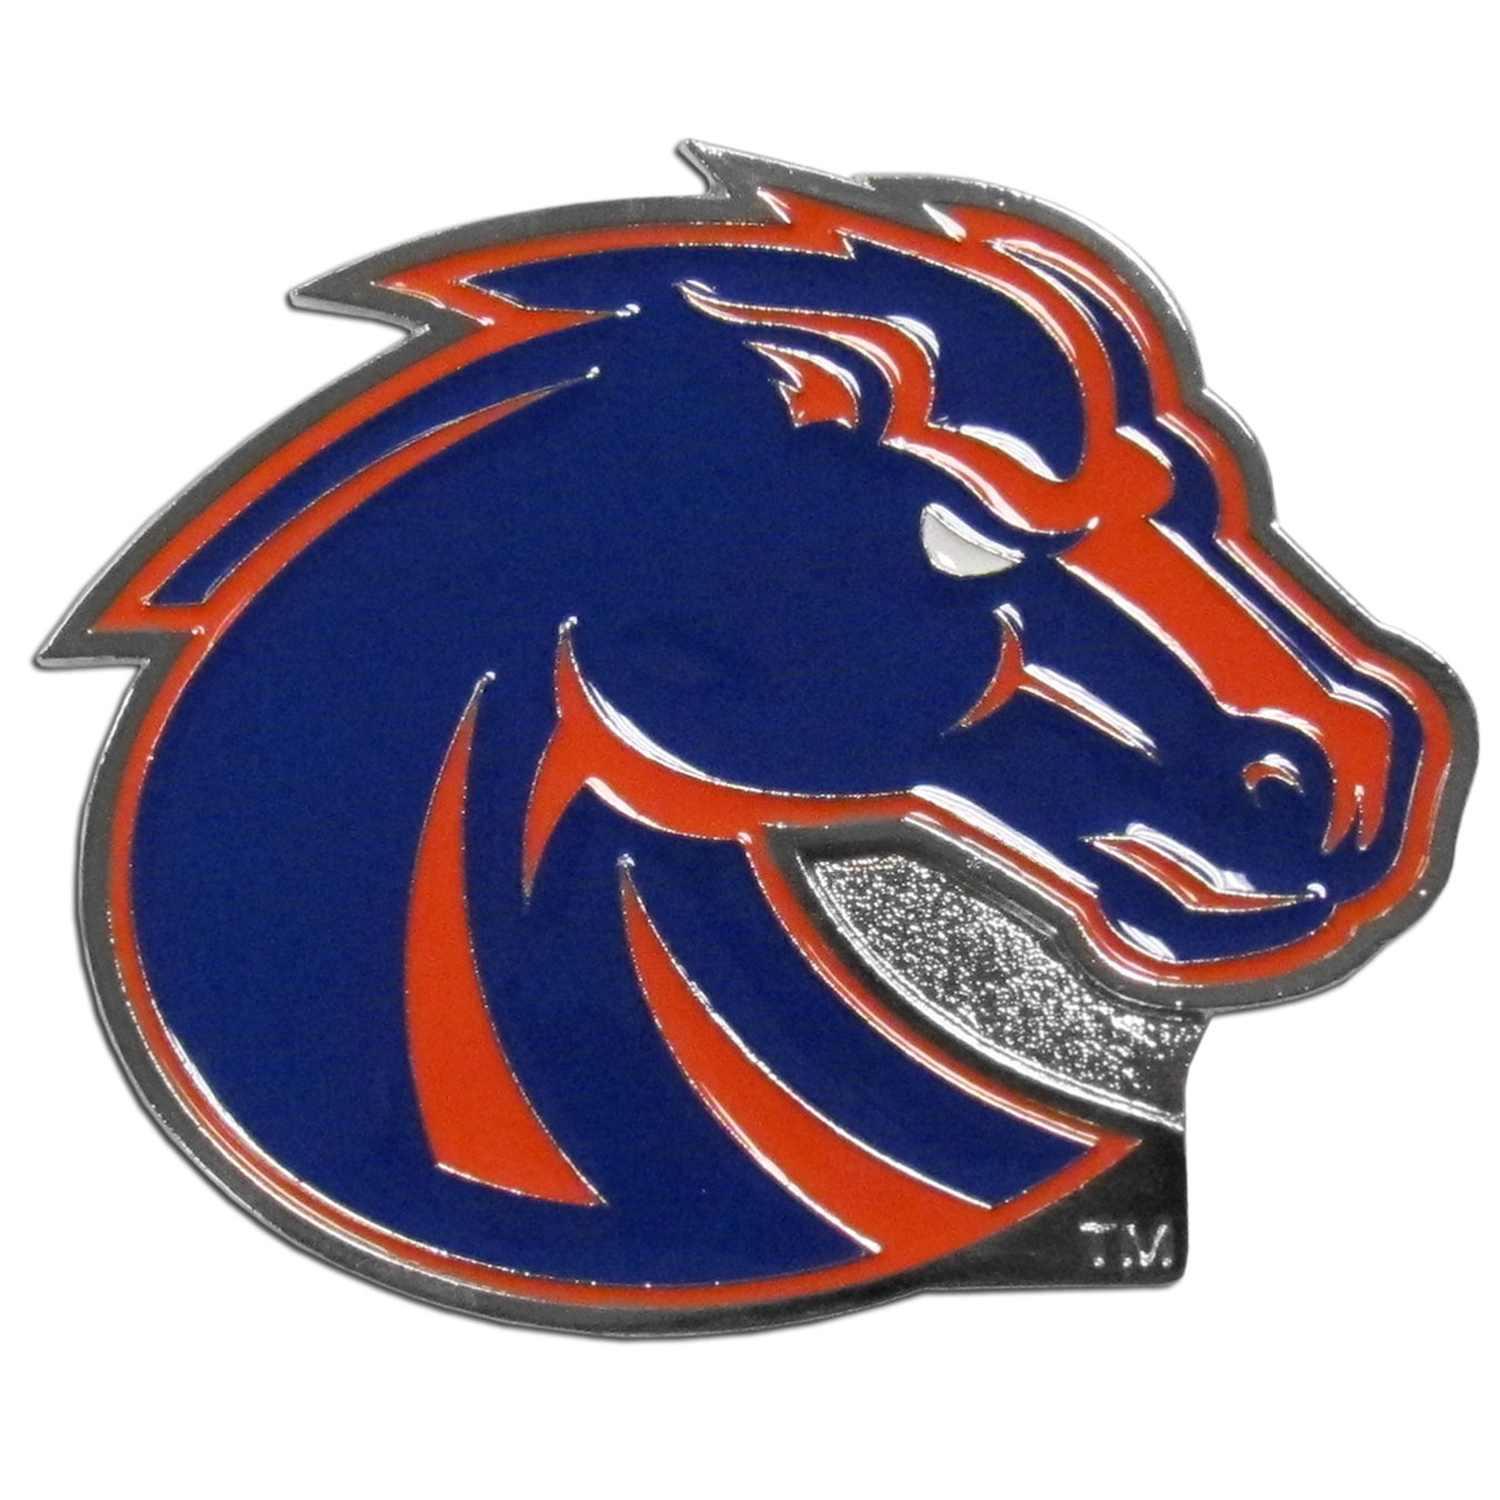 "Collegiate Hitch Cover - Boise St. Broncos - Our collegiate hitch cover is a durable and attractive way to show off your Boise State Broncos spirit. The hitch fits a 2"" hitch receiver. Thank you for shopping with CrazedOutSports.com"